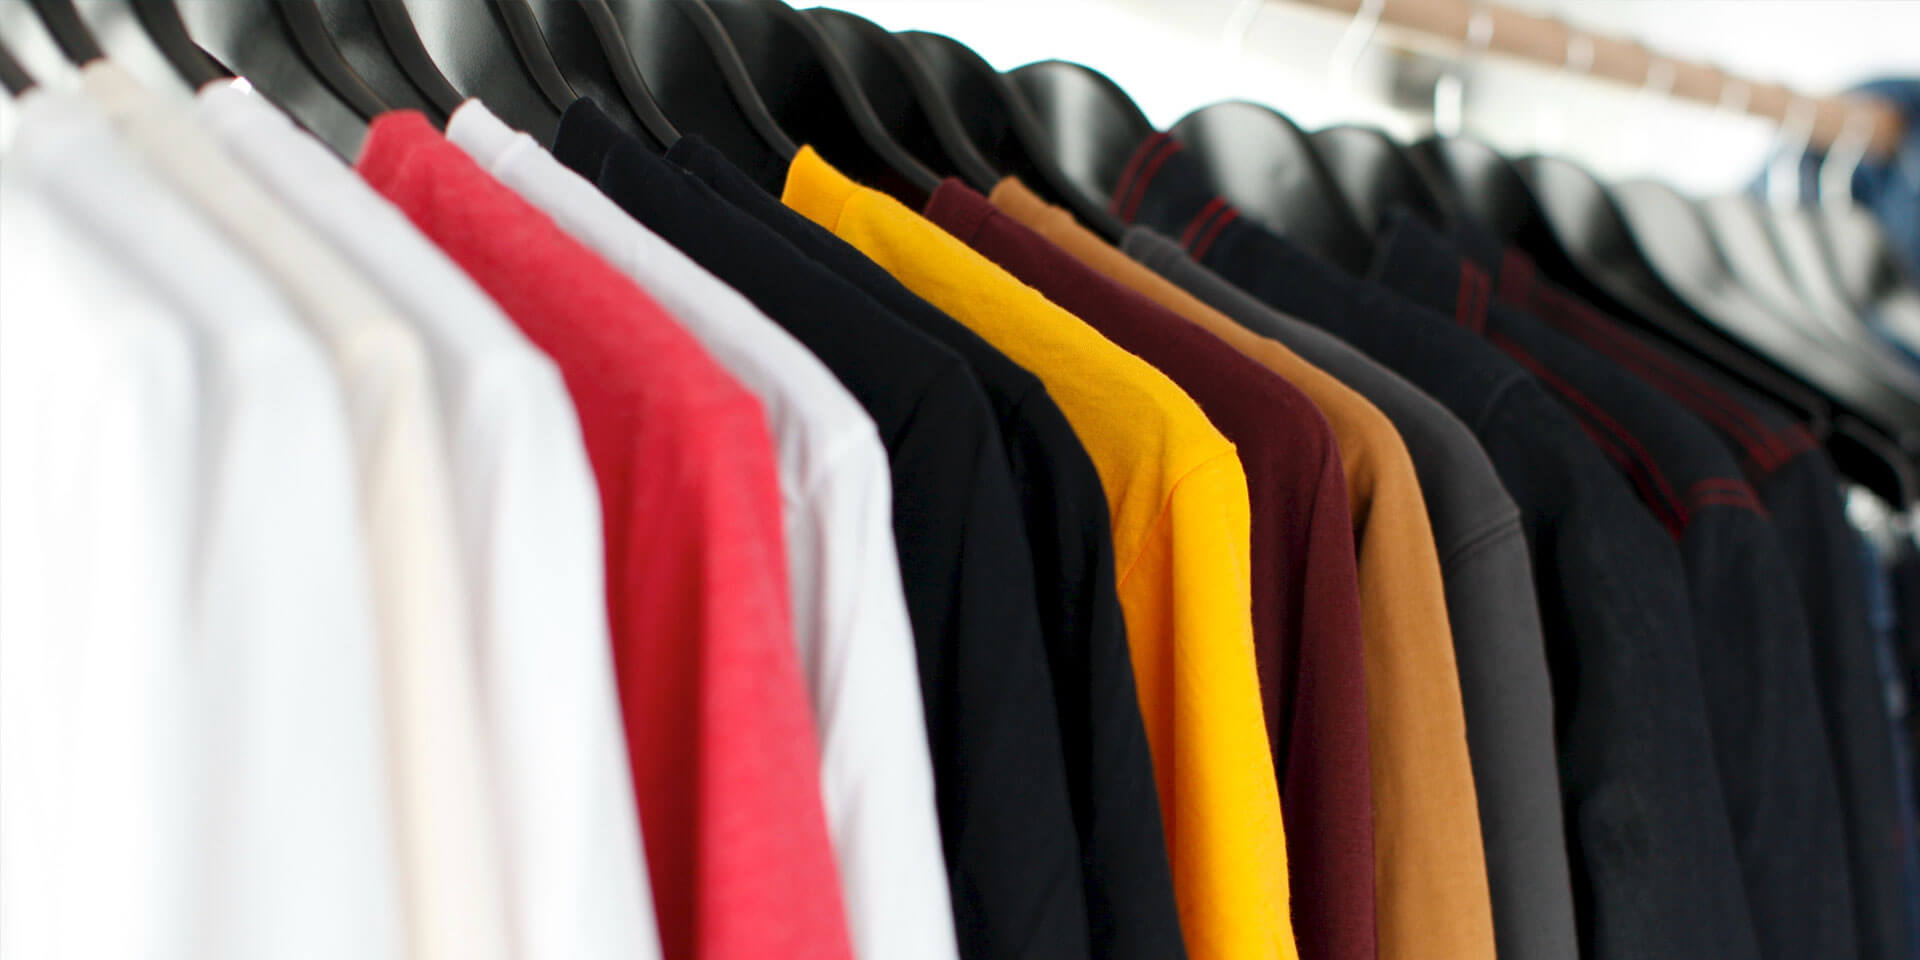 4 ways that disparate retail systems can stifle business growth